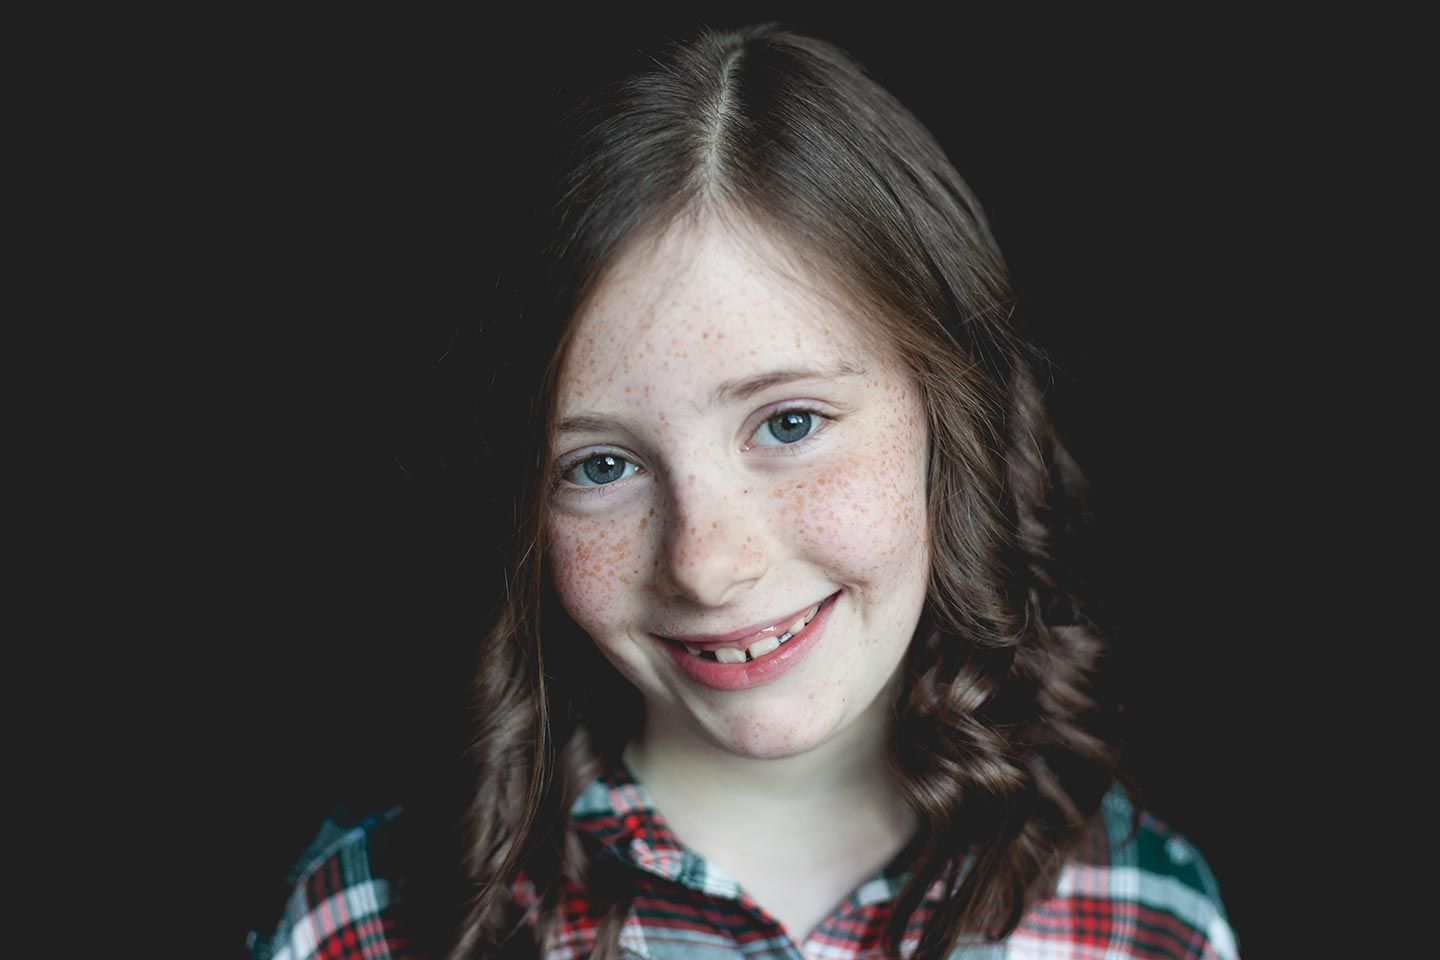 modern school portrait with black backdrop and girl smiling wearing a plaid shirt